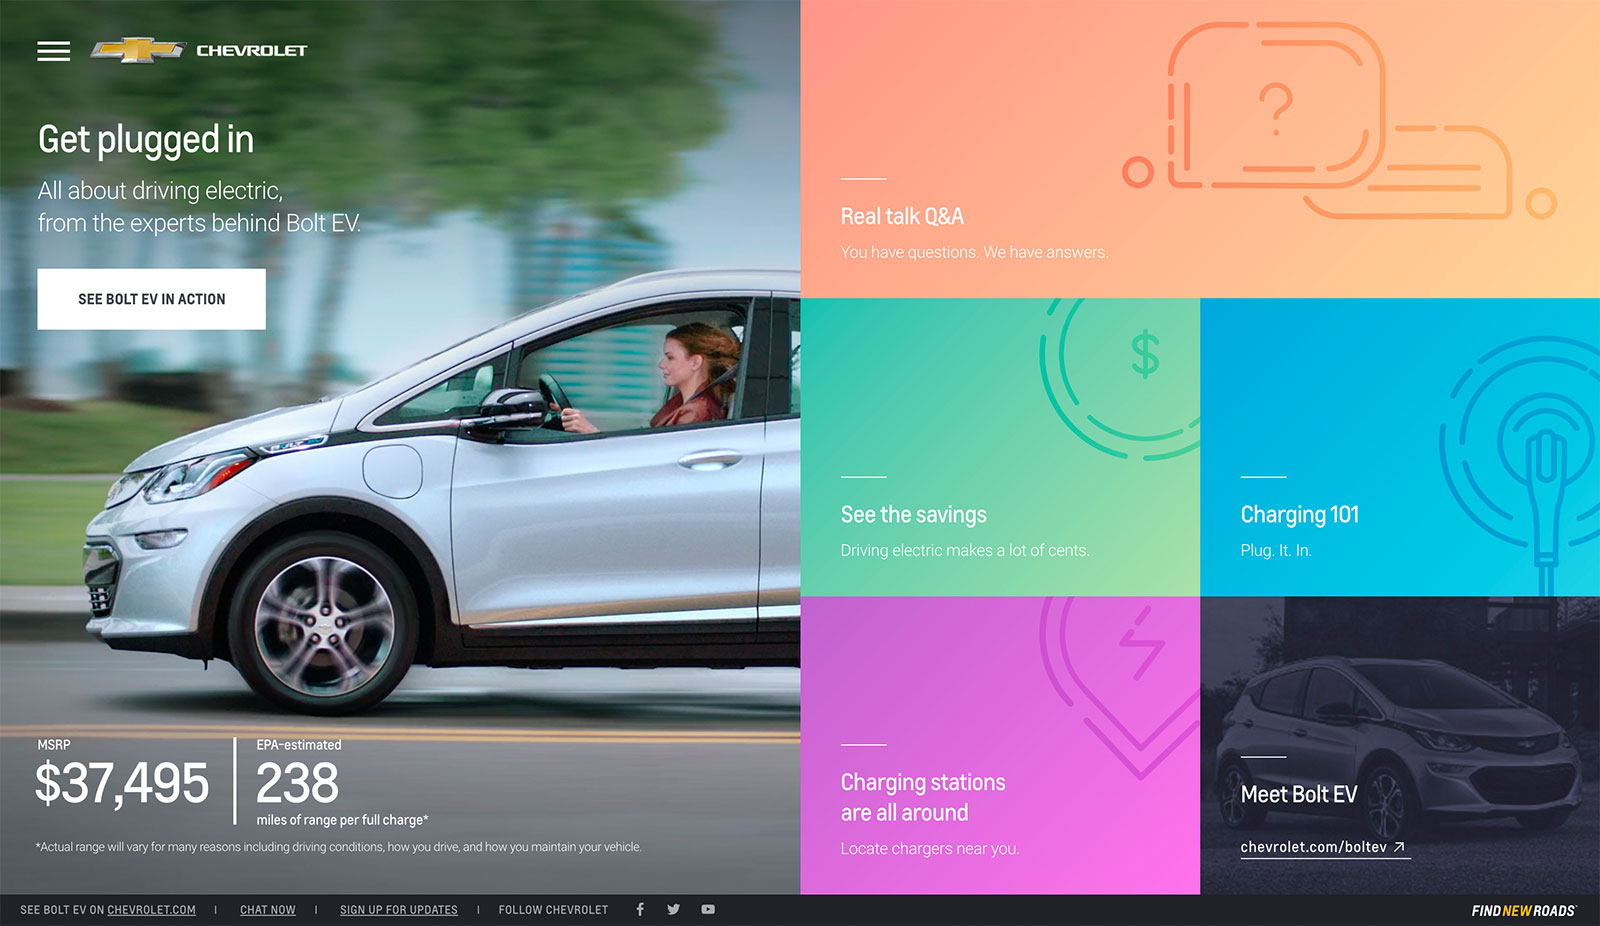 Chevy Bolt Ev A microsite showcasing the new Chevy Bolt Electric Vehicle